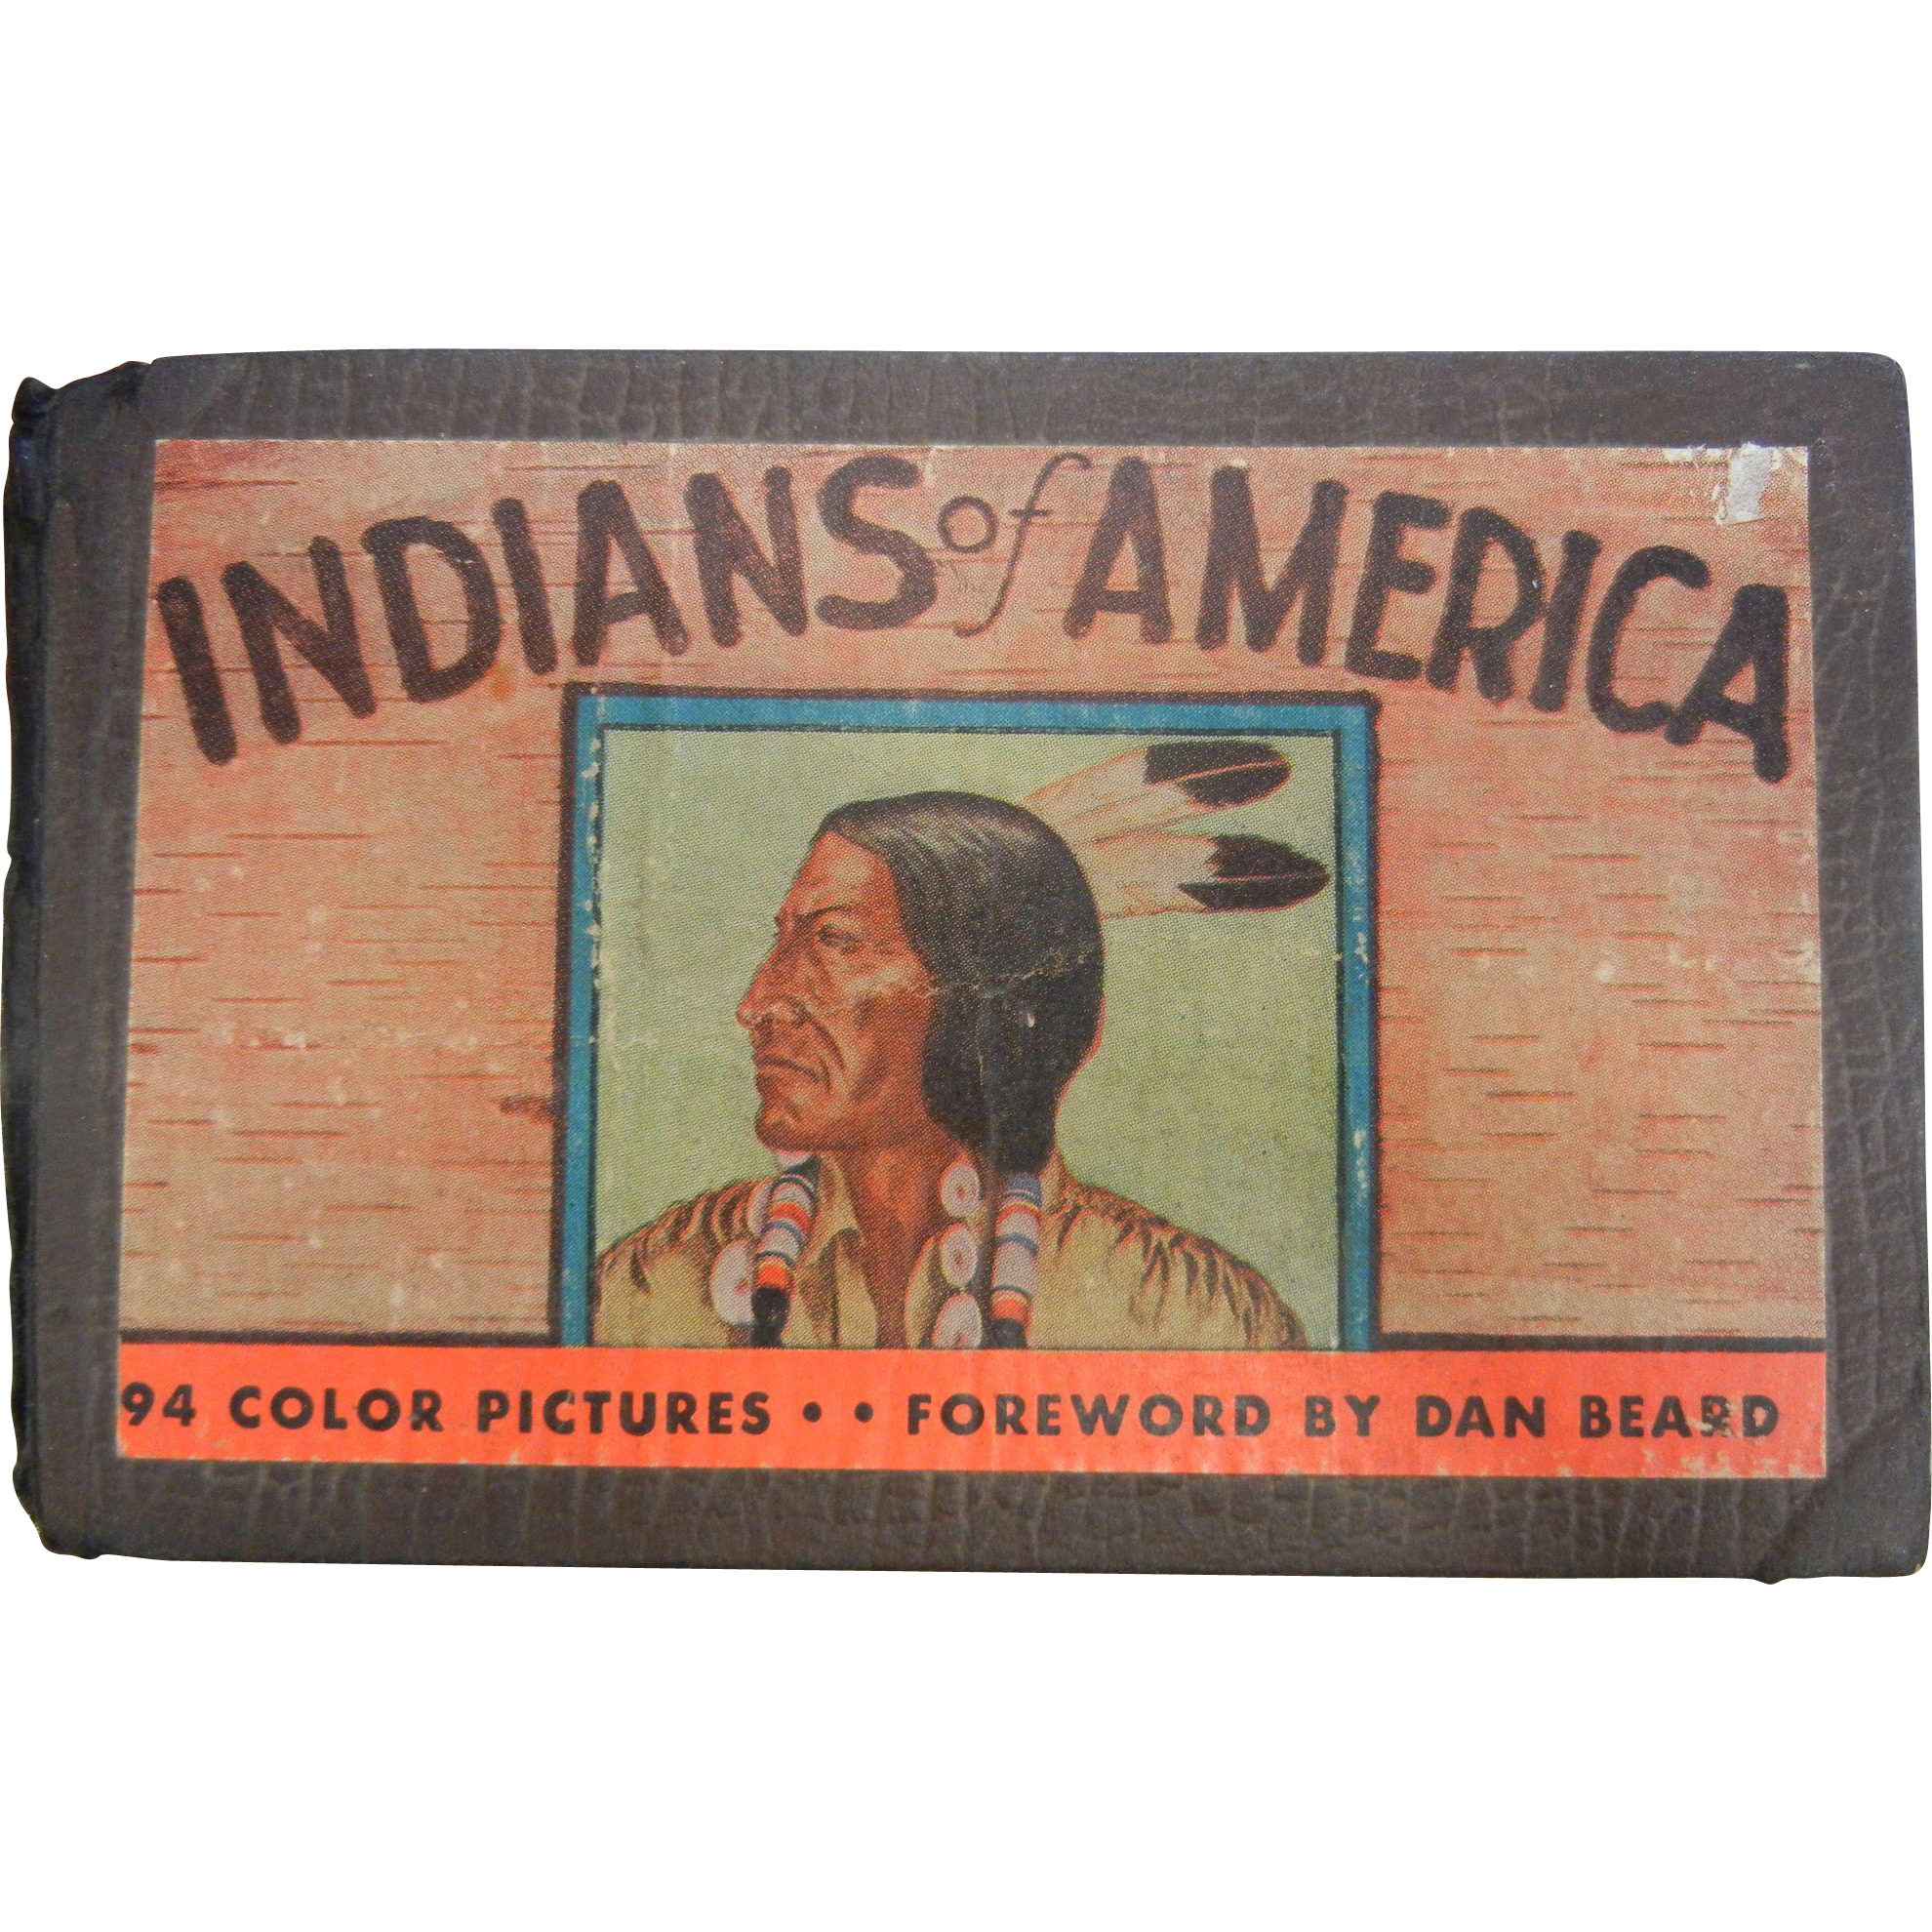 Vintage 1935 'Indians of American' Book - By Lillian Davids Fazzini